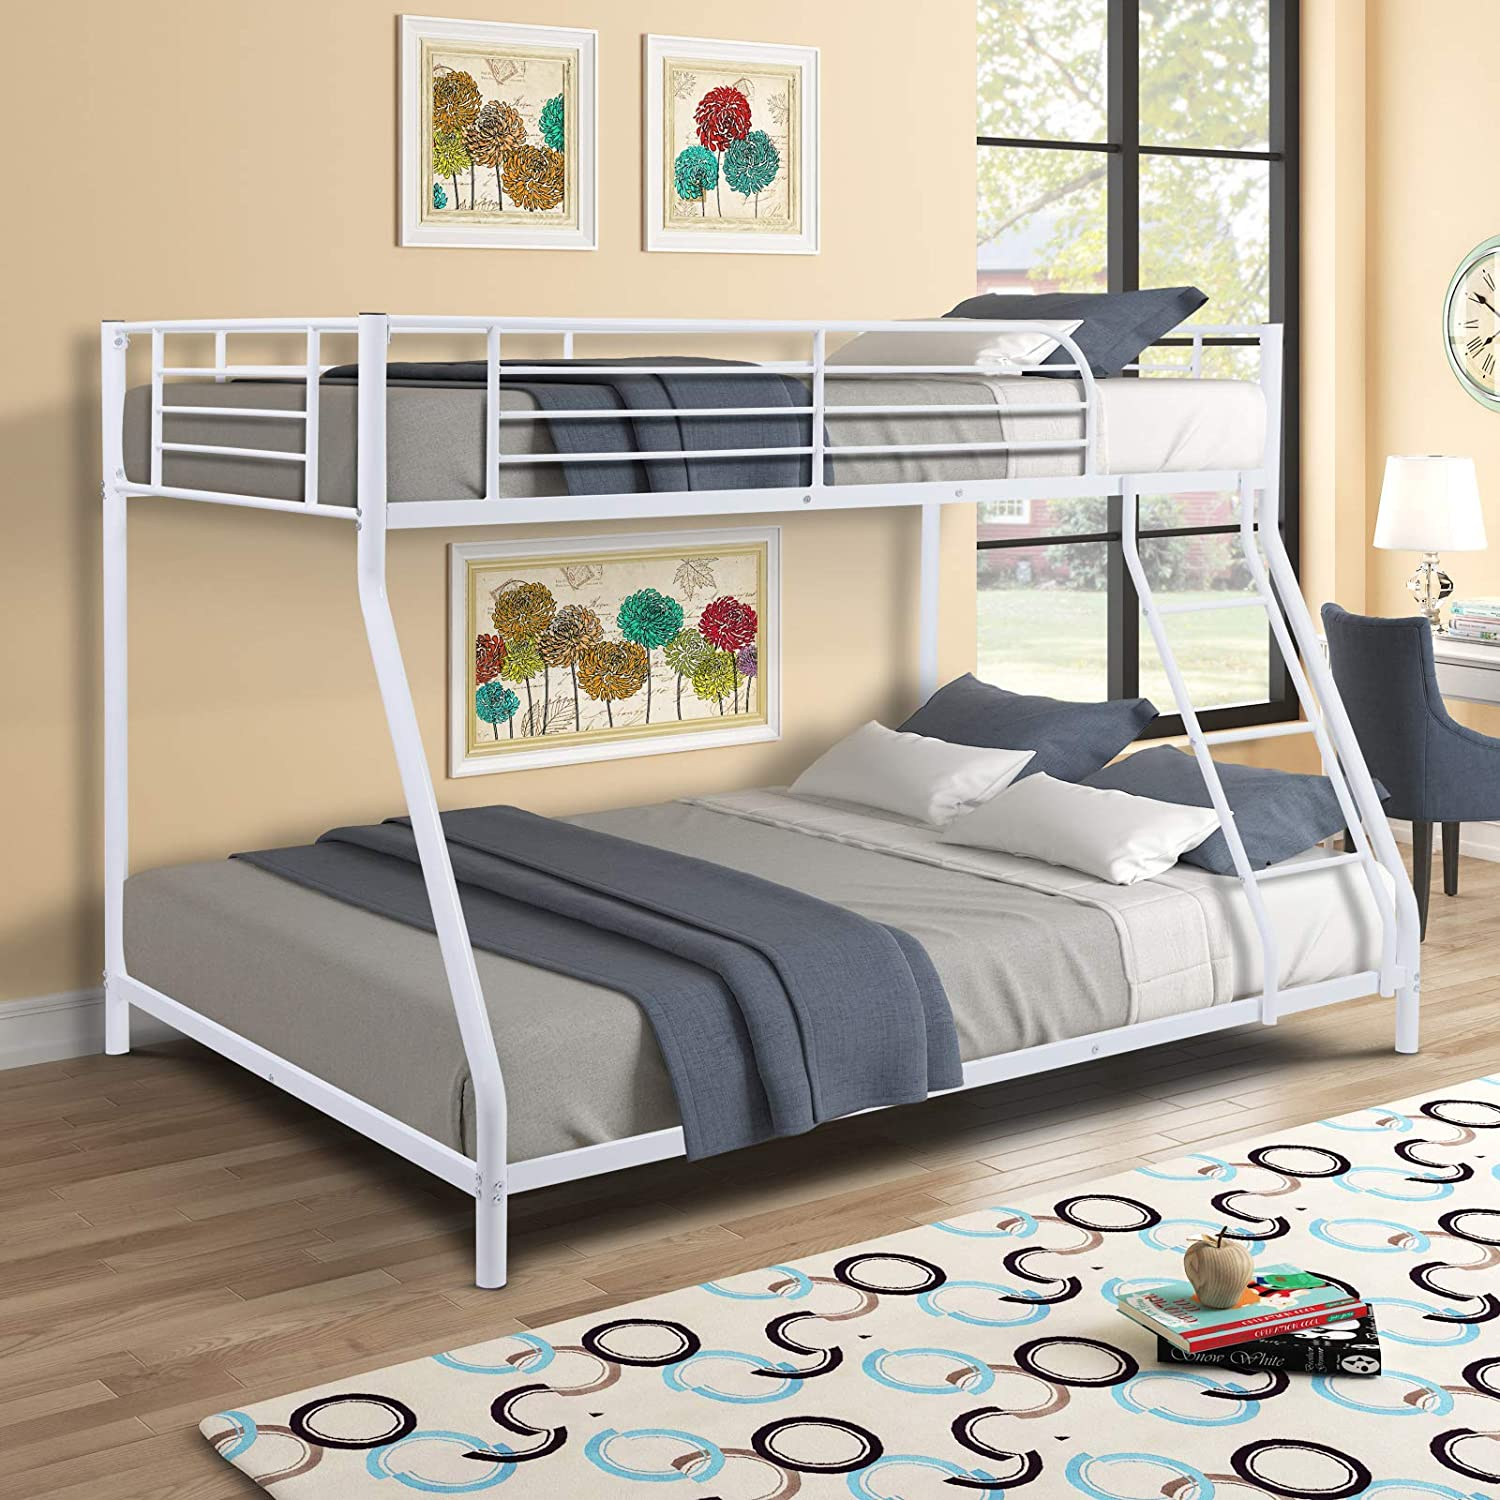 V-HOME Heavy-Duty Metal Bunk Bed 2- with Over Full Twin Rapid OFFer rise